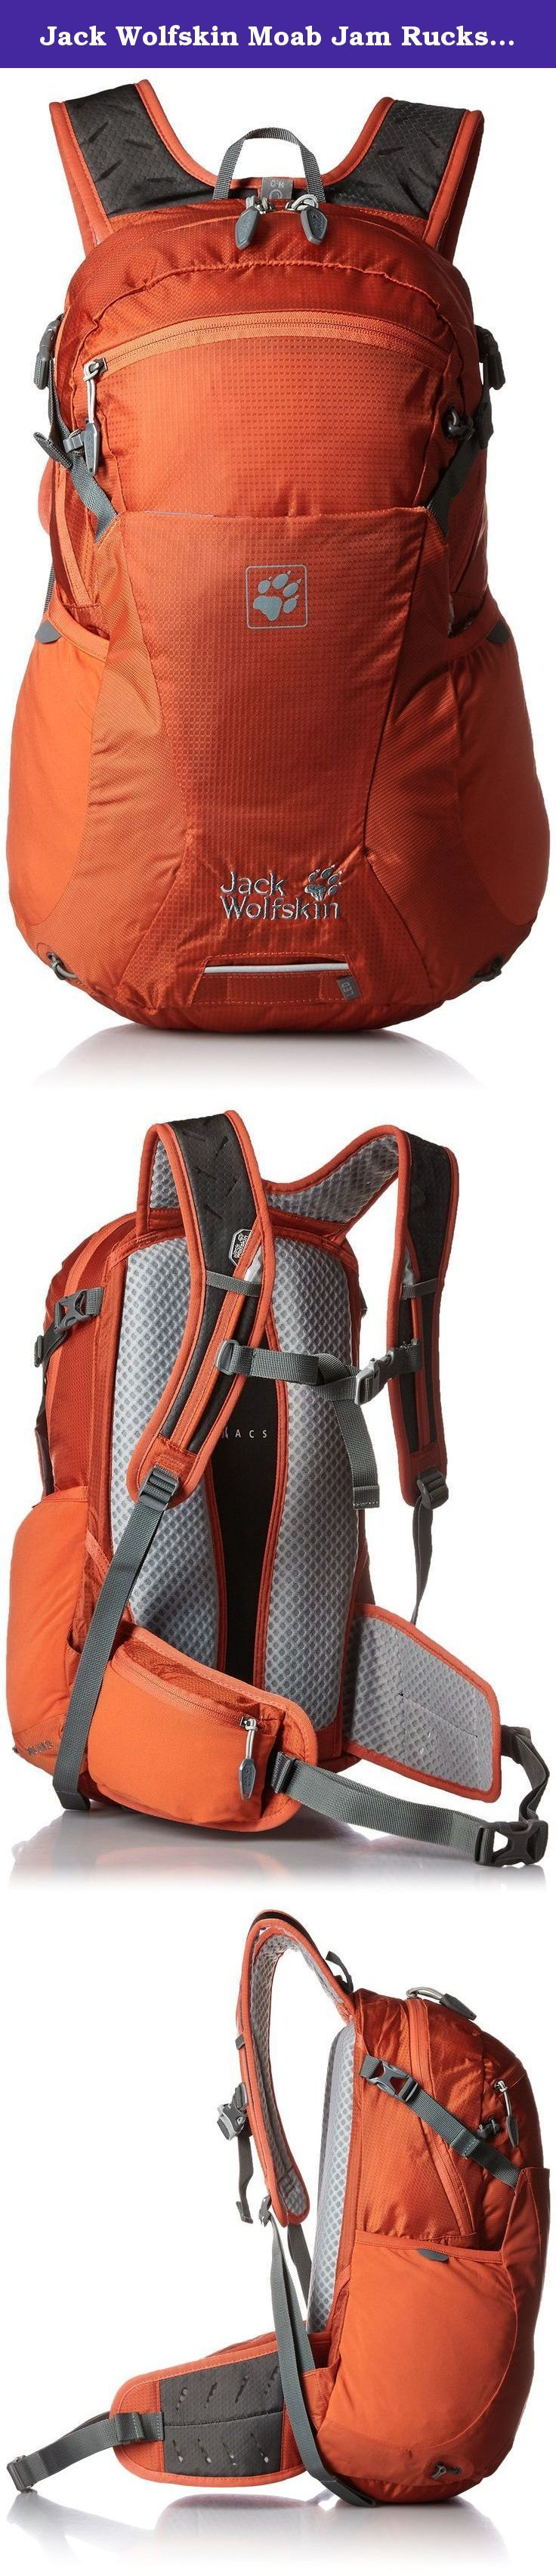 Jack Wolfskin Moab Jam Rucksack, Chili, 24 L. Combines freedom of movement with versatile detailing: the moab Jam 24 is a medium-capacity, lightweight day pack for biking and hiking trips. The acs tight suspension system hugs your body and ensures full control of the load at all times. To ensure you enjoy those physically demanding activities, the central air channel at the back and the air-permeable padding provide exceptional ventilation and outstanding carry comfort.We've added many...